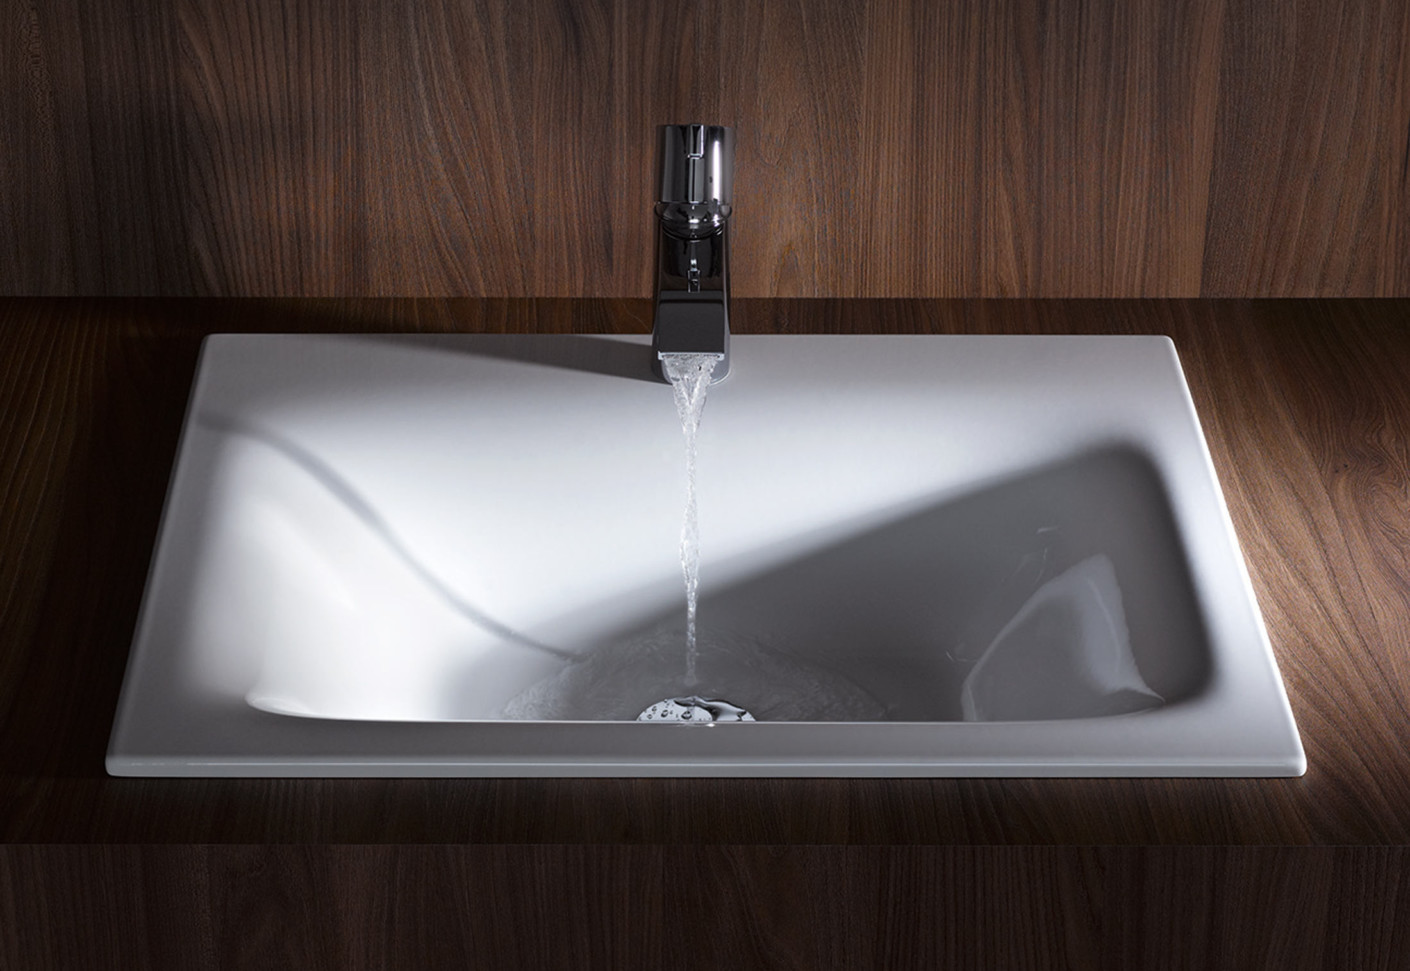 kitchen design india pictures wire cart bettelux built-in washbasin by bette | stylepark